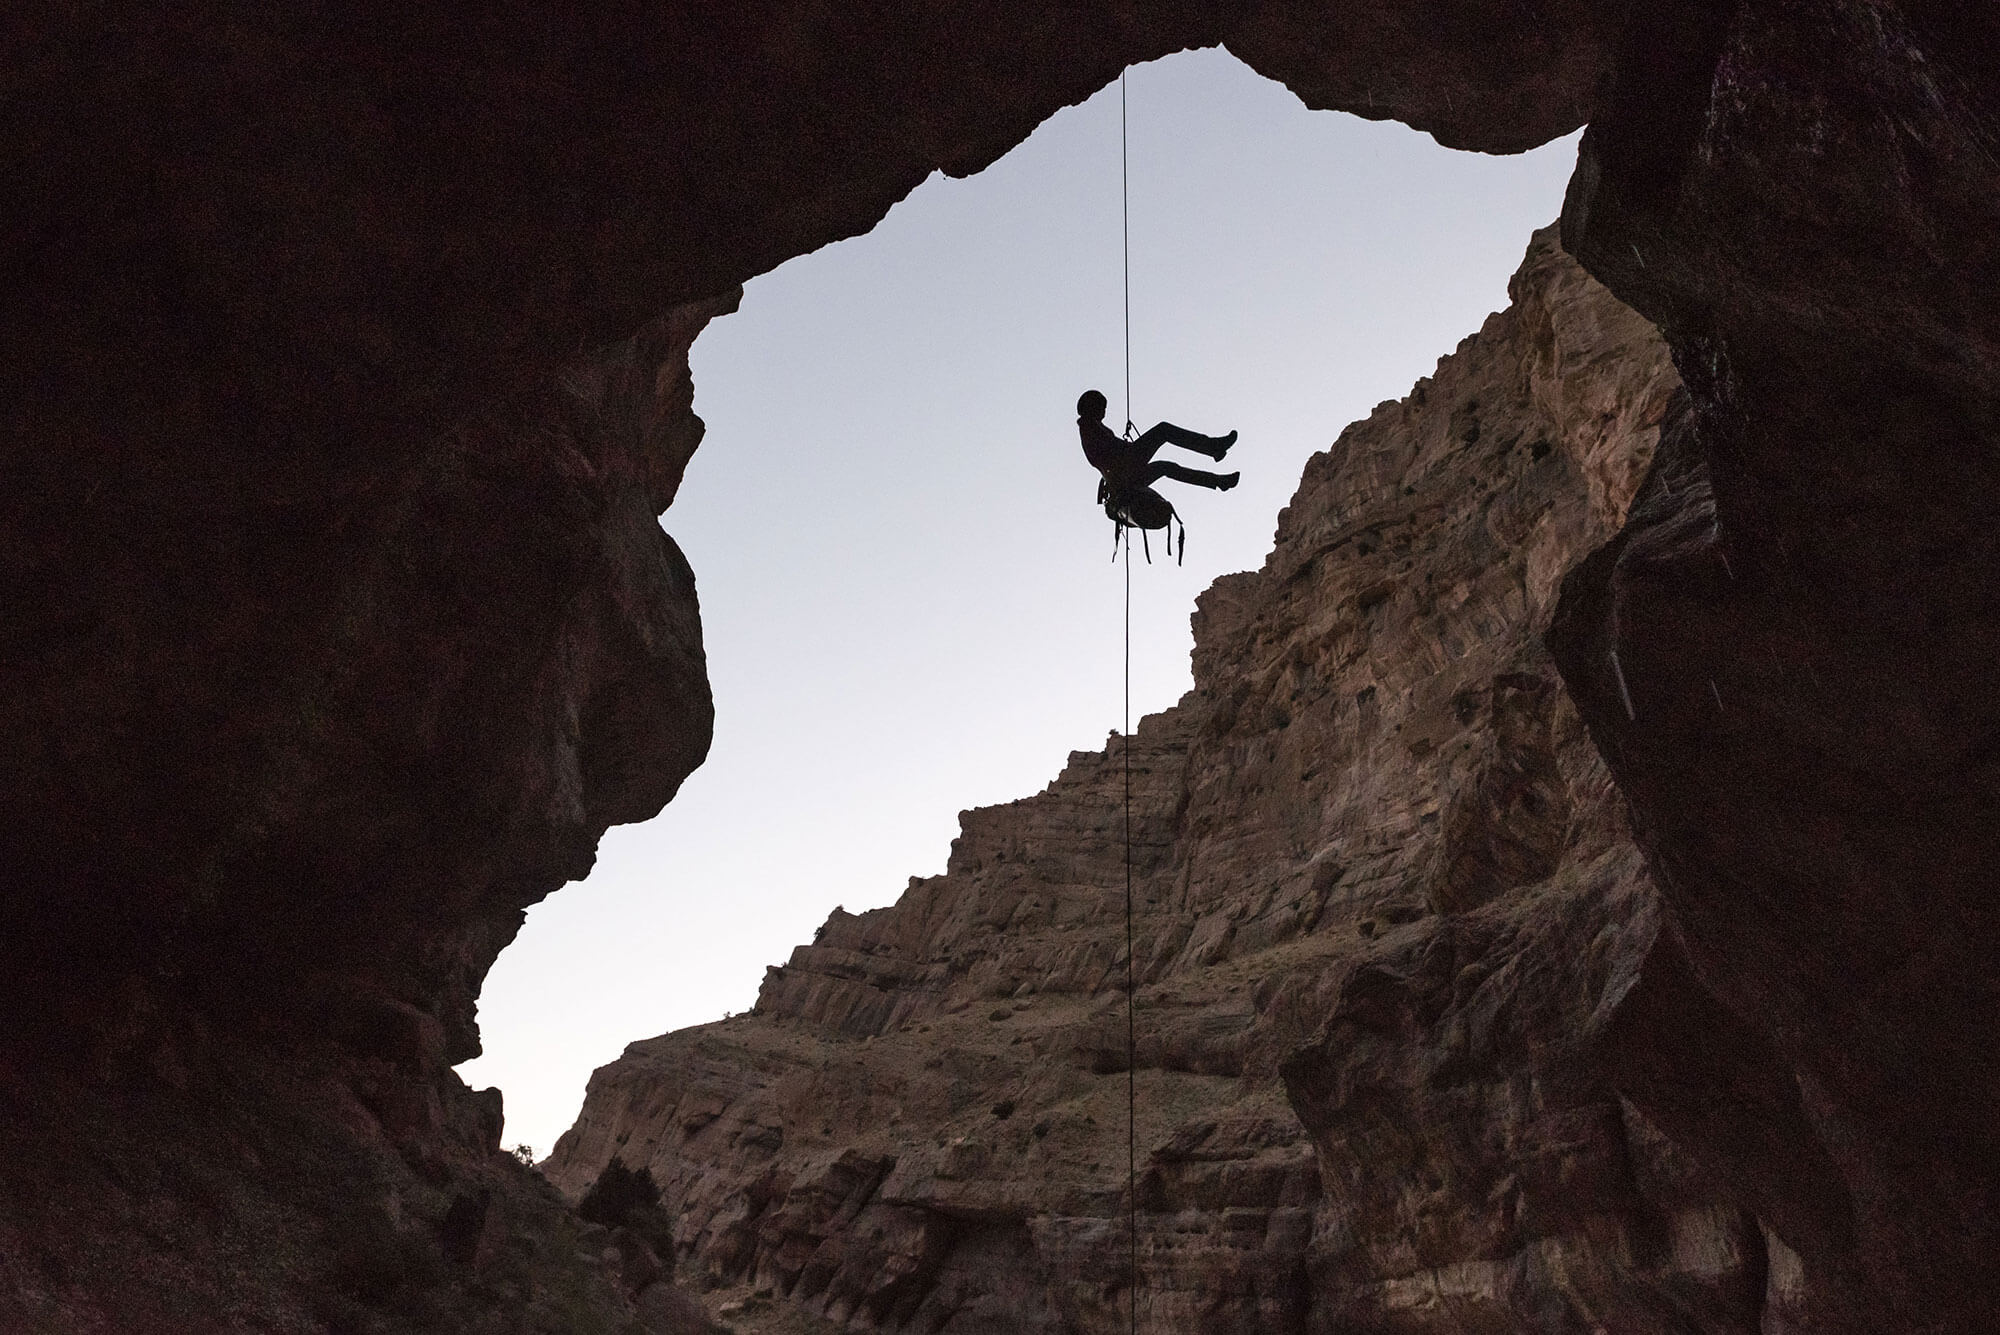 Canyoning in Iran with Gus Schiavon from Rebelay canyoning